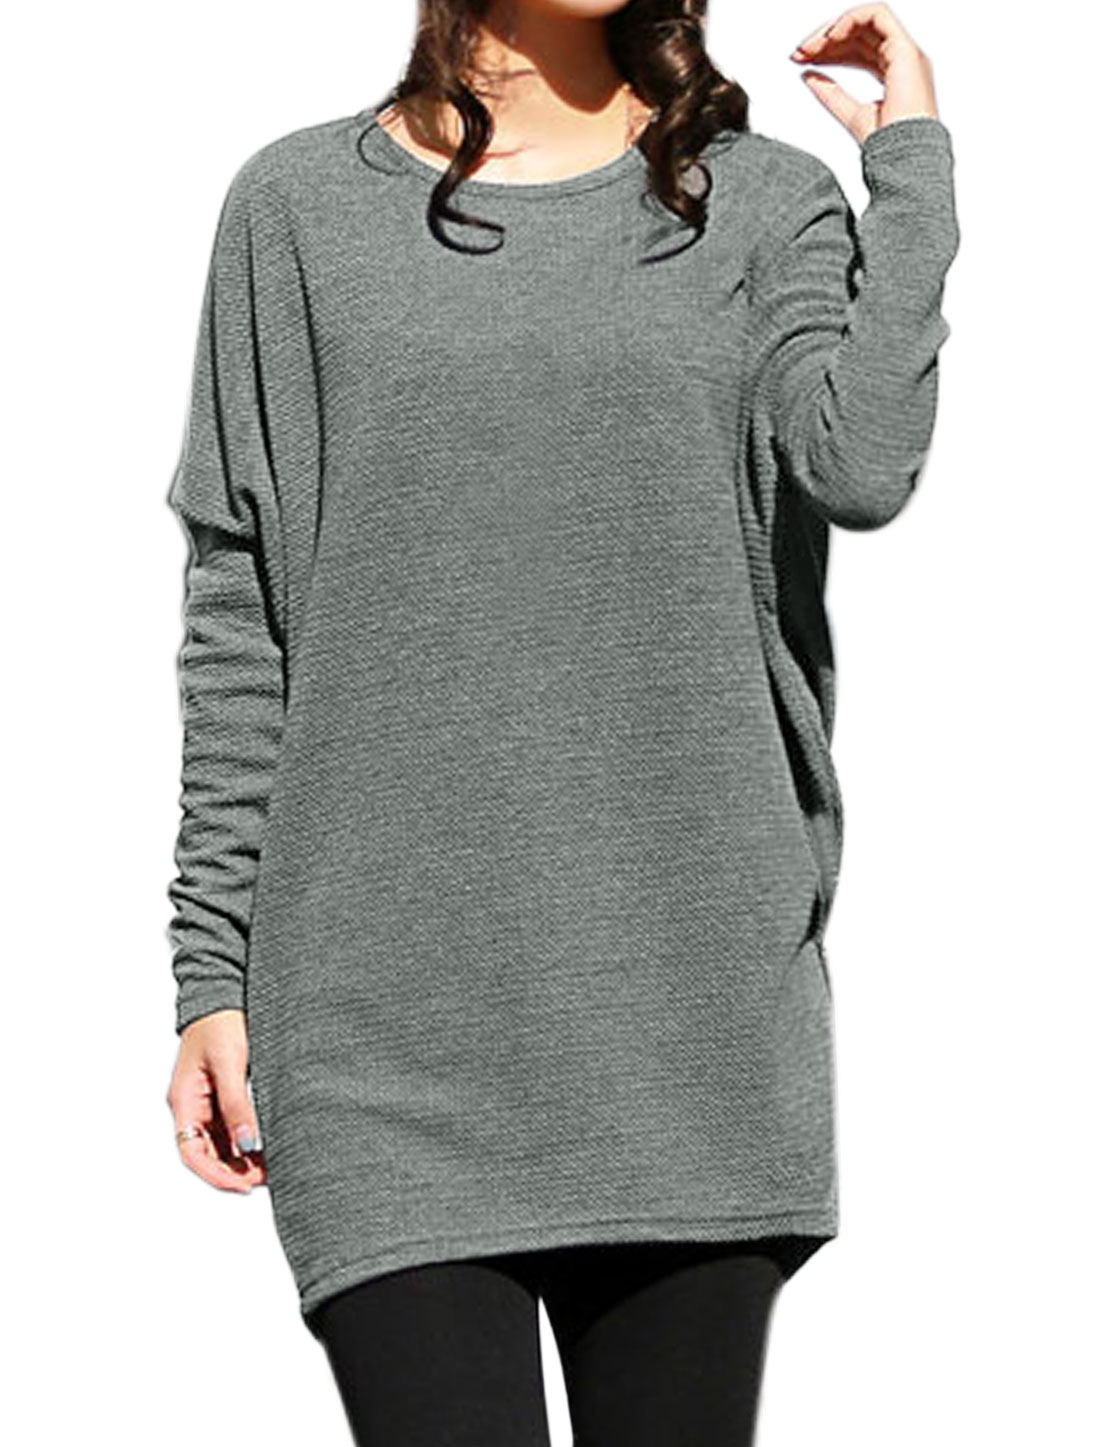 Women Round Neck Textured Loose Dolman Tunic Top Gray M